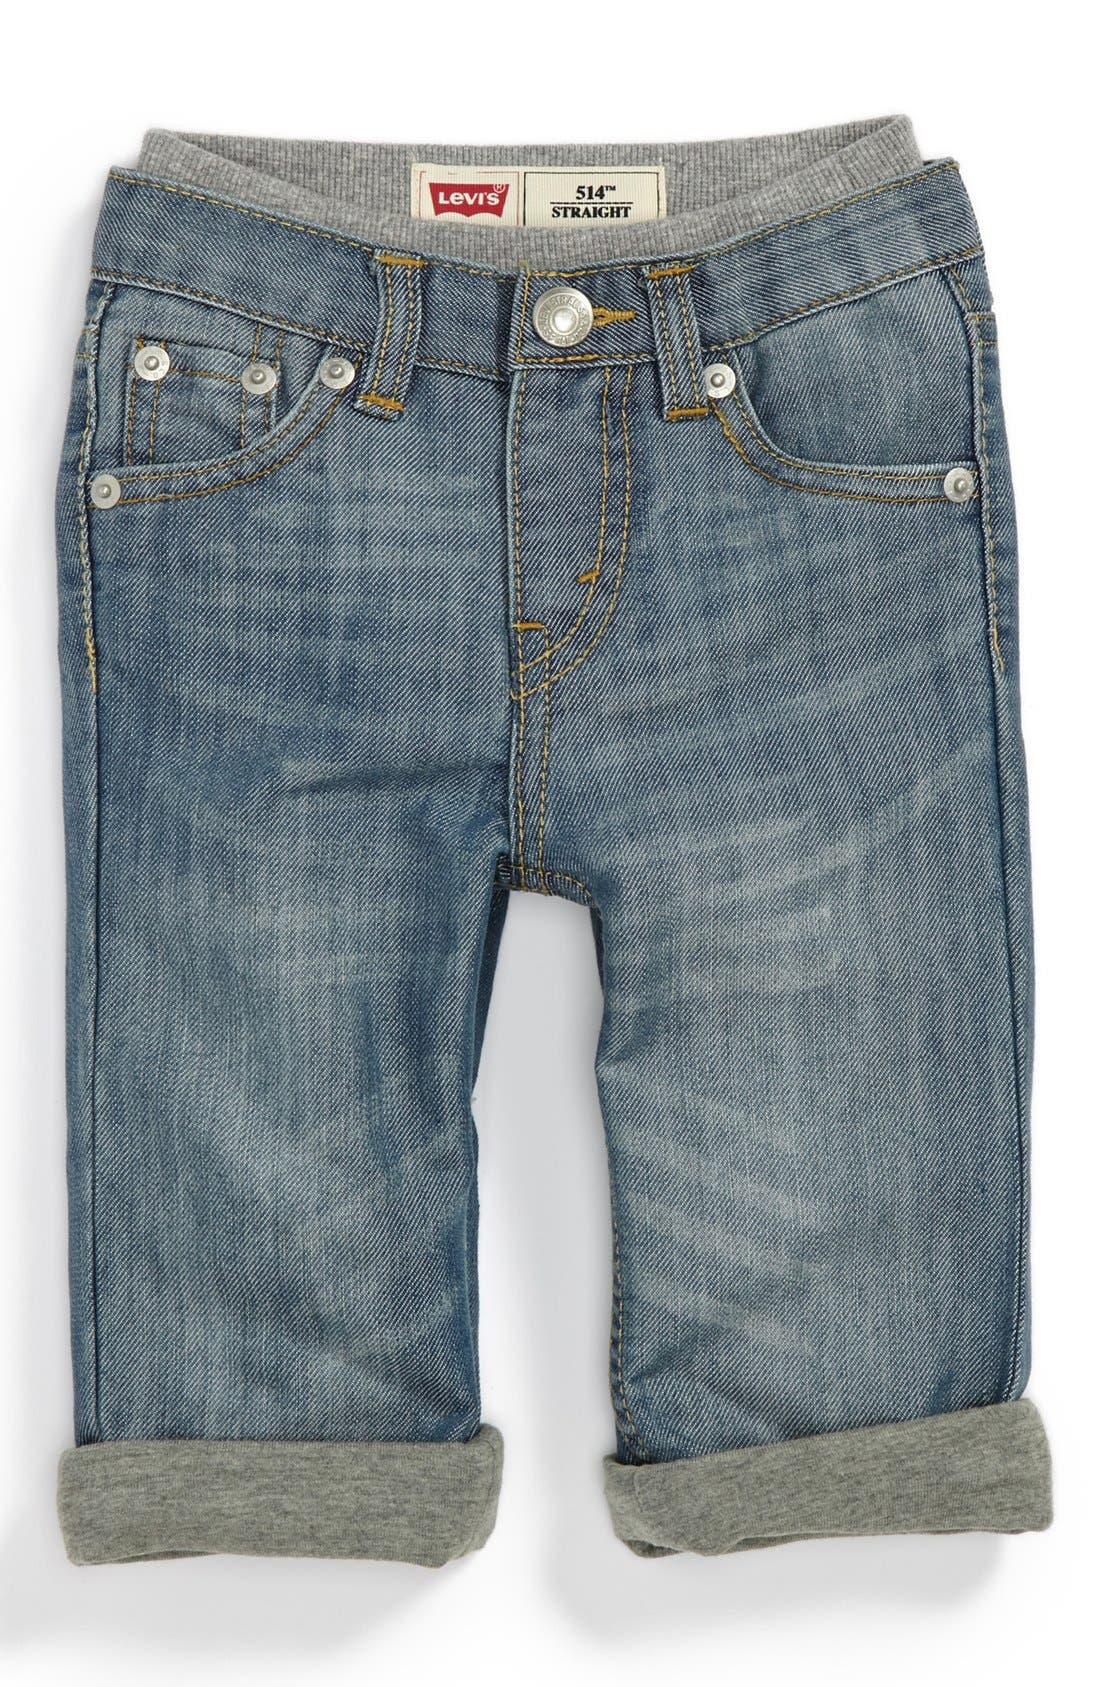 Alternate Image 2  - Levi's '514™' Straight Leg Jeans (Toddler Boys)